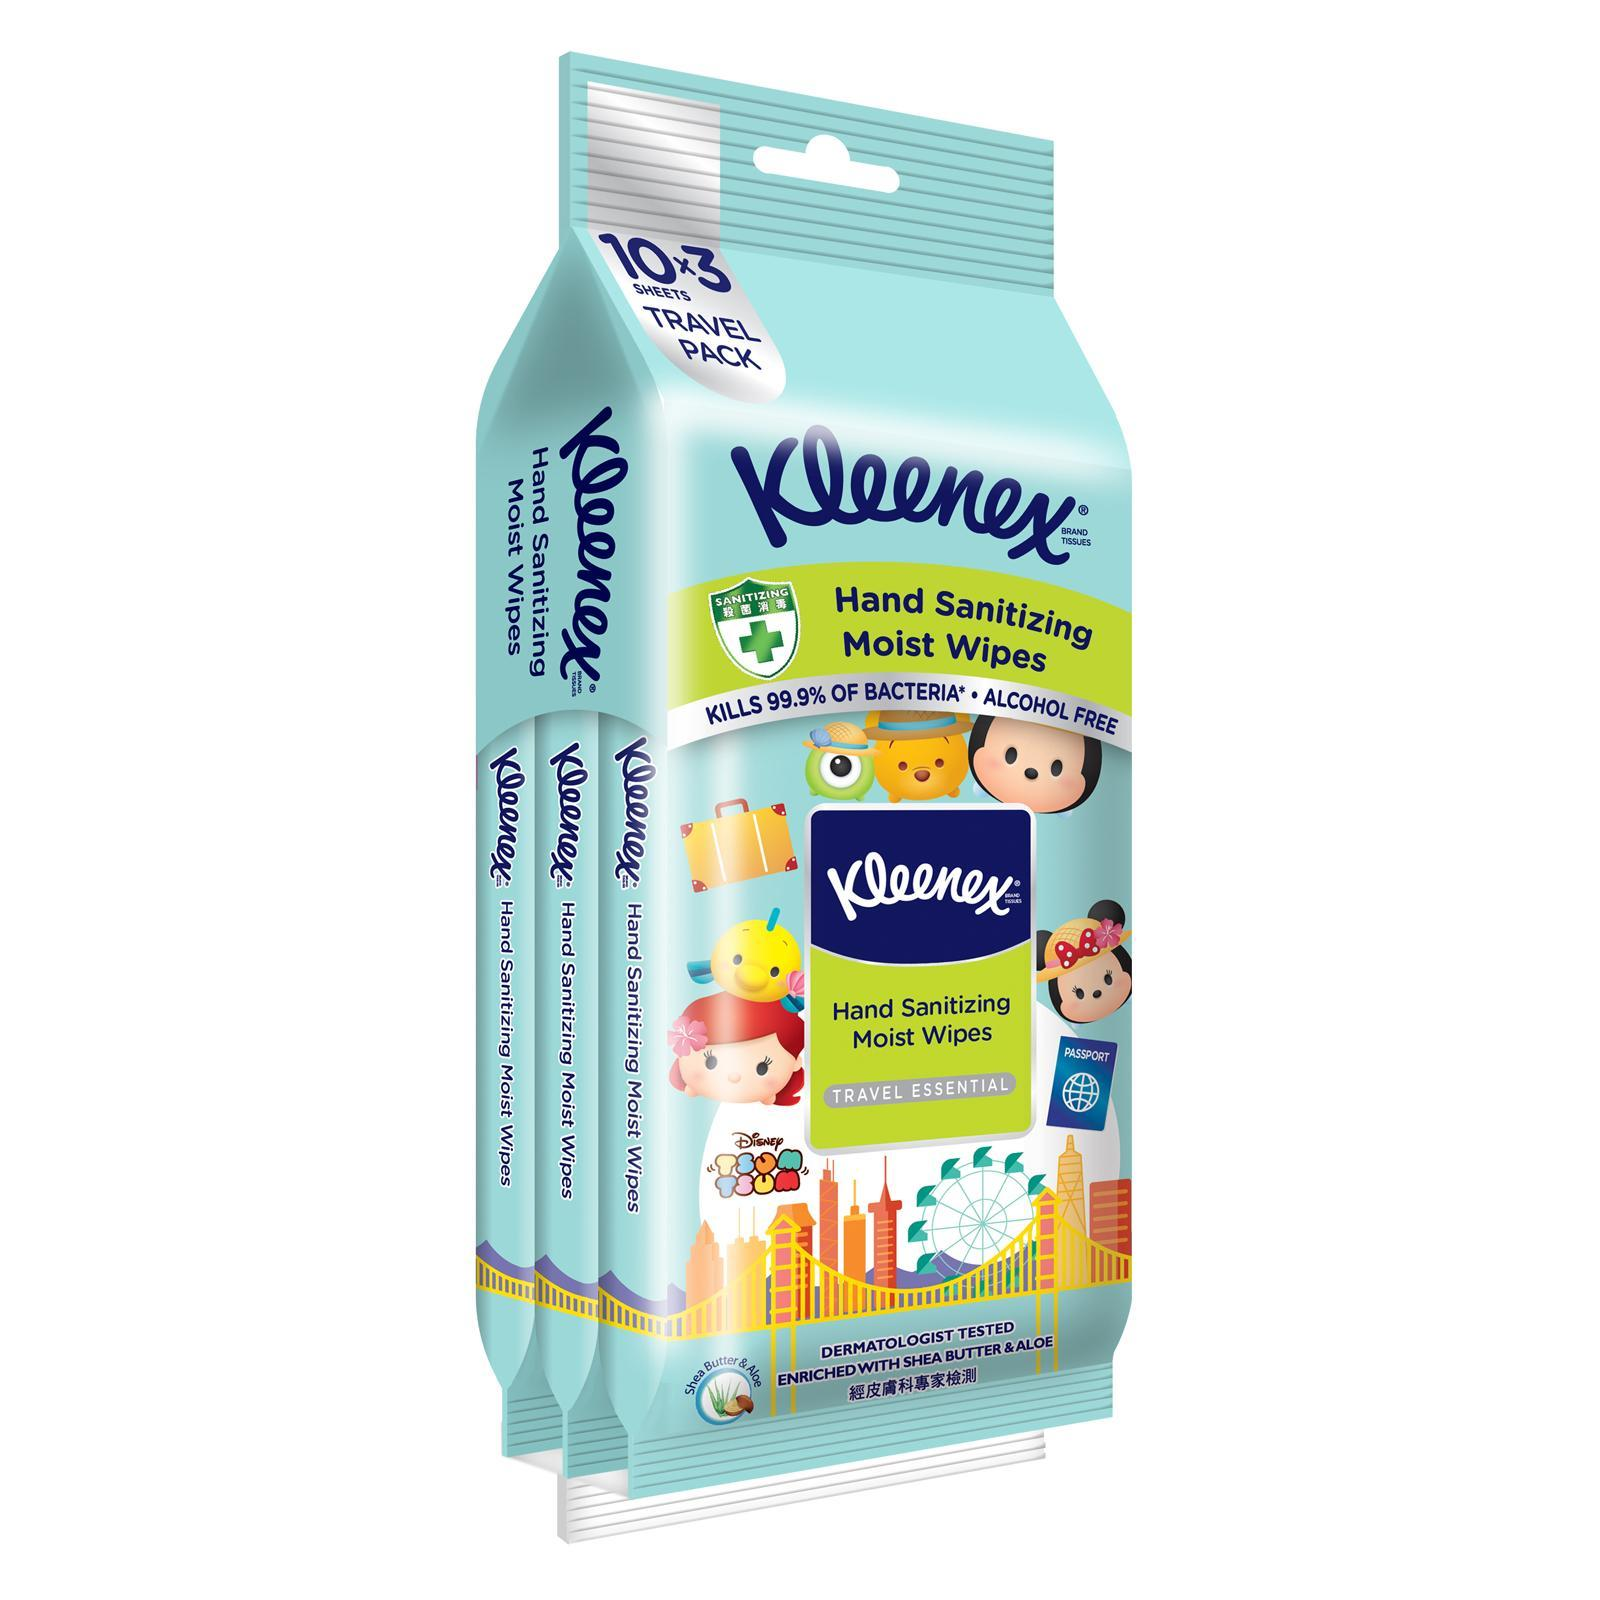 Kleenex Protect Hand Sanitizing Moist Wipes